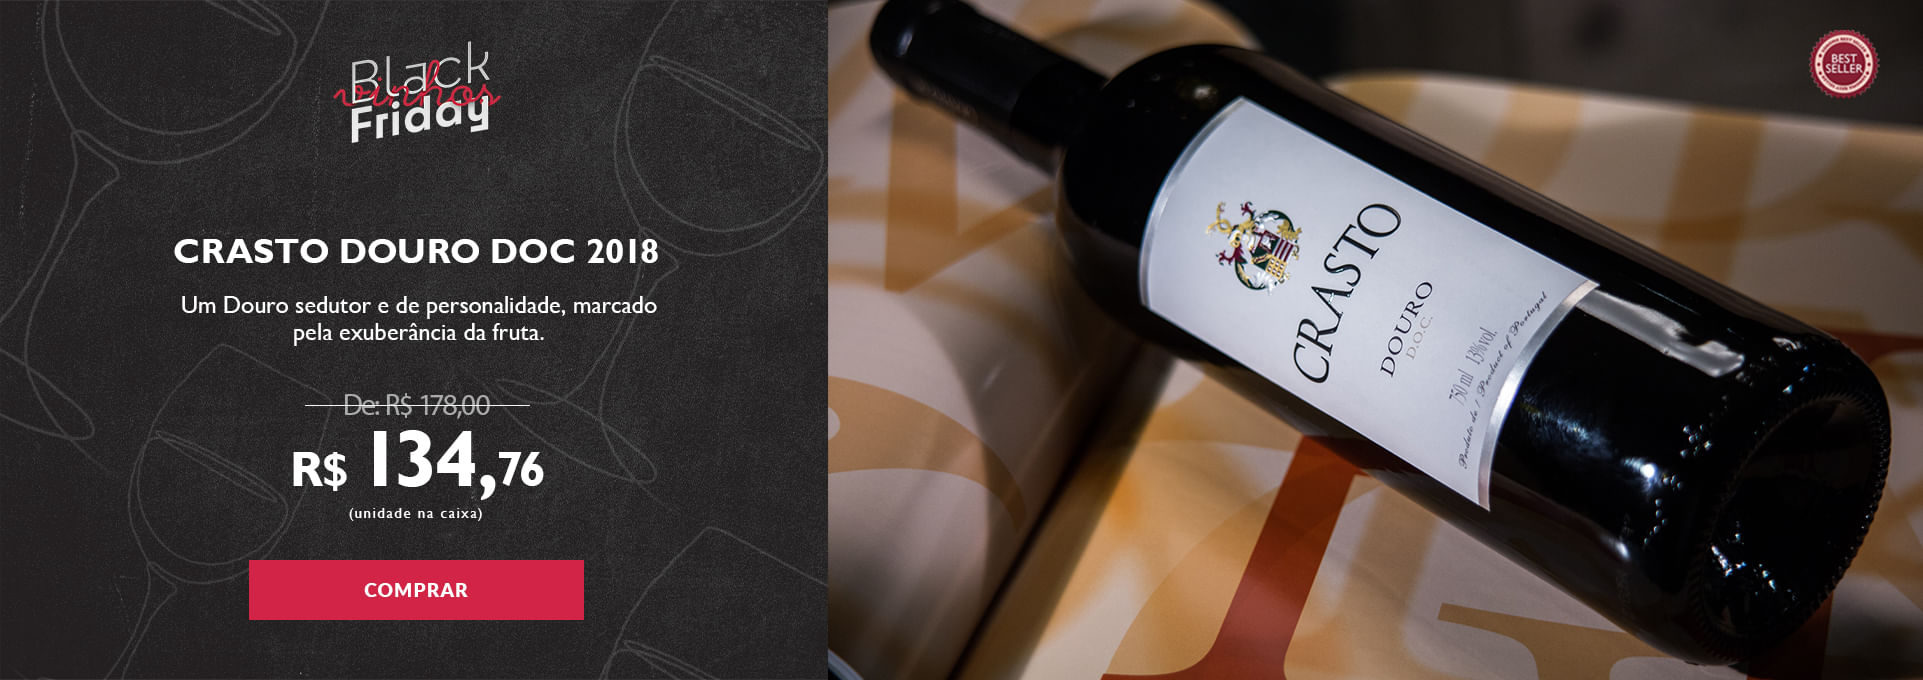 Crasto Douro DOC 2018